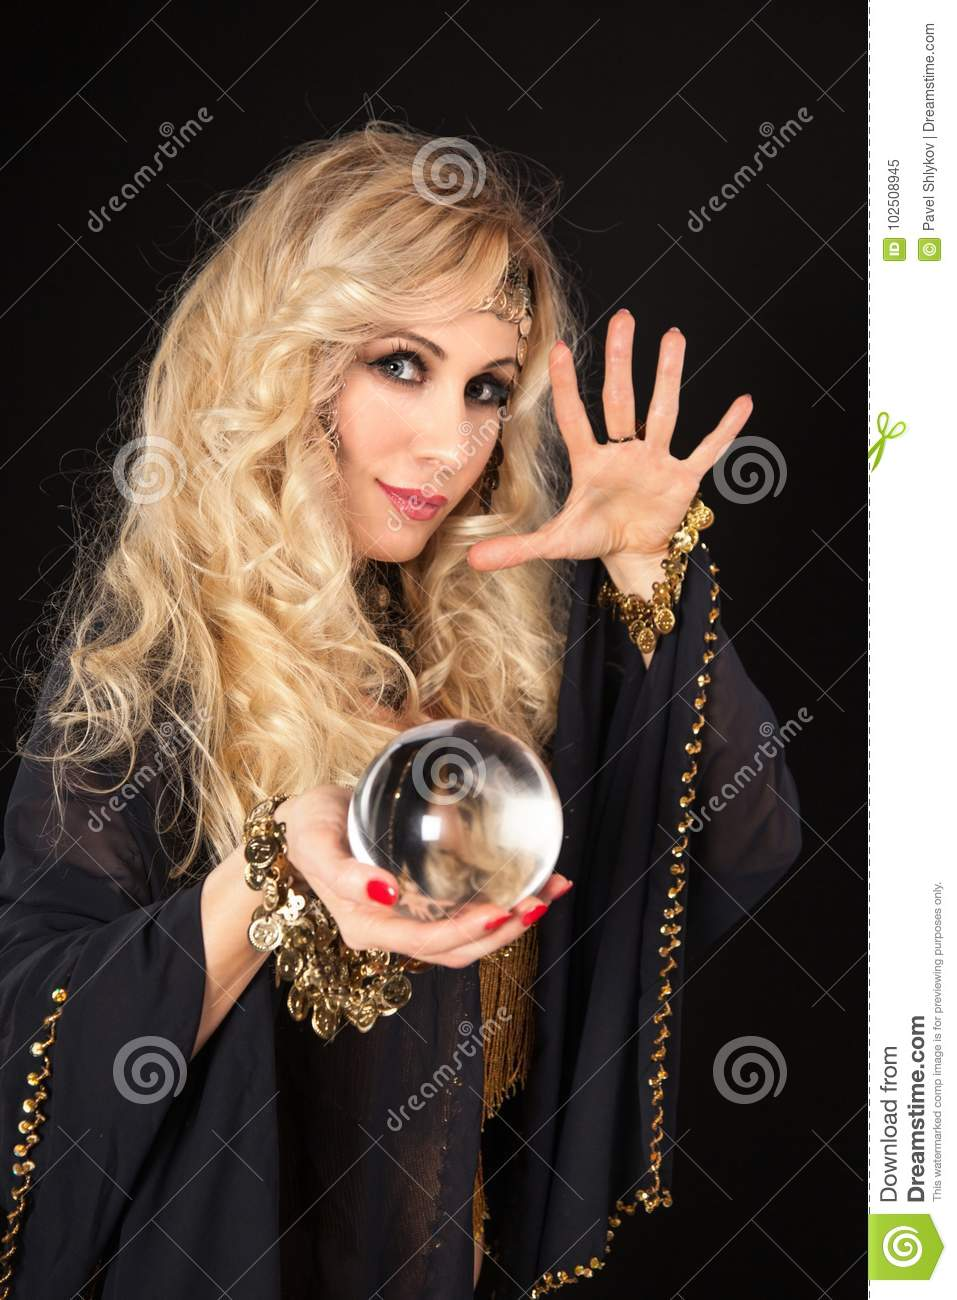 Crystal Ball And Fortune Teller Hands  Stock Image - Image